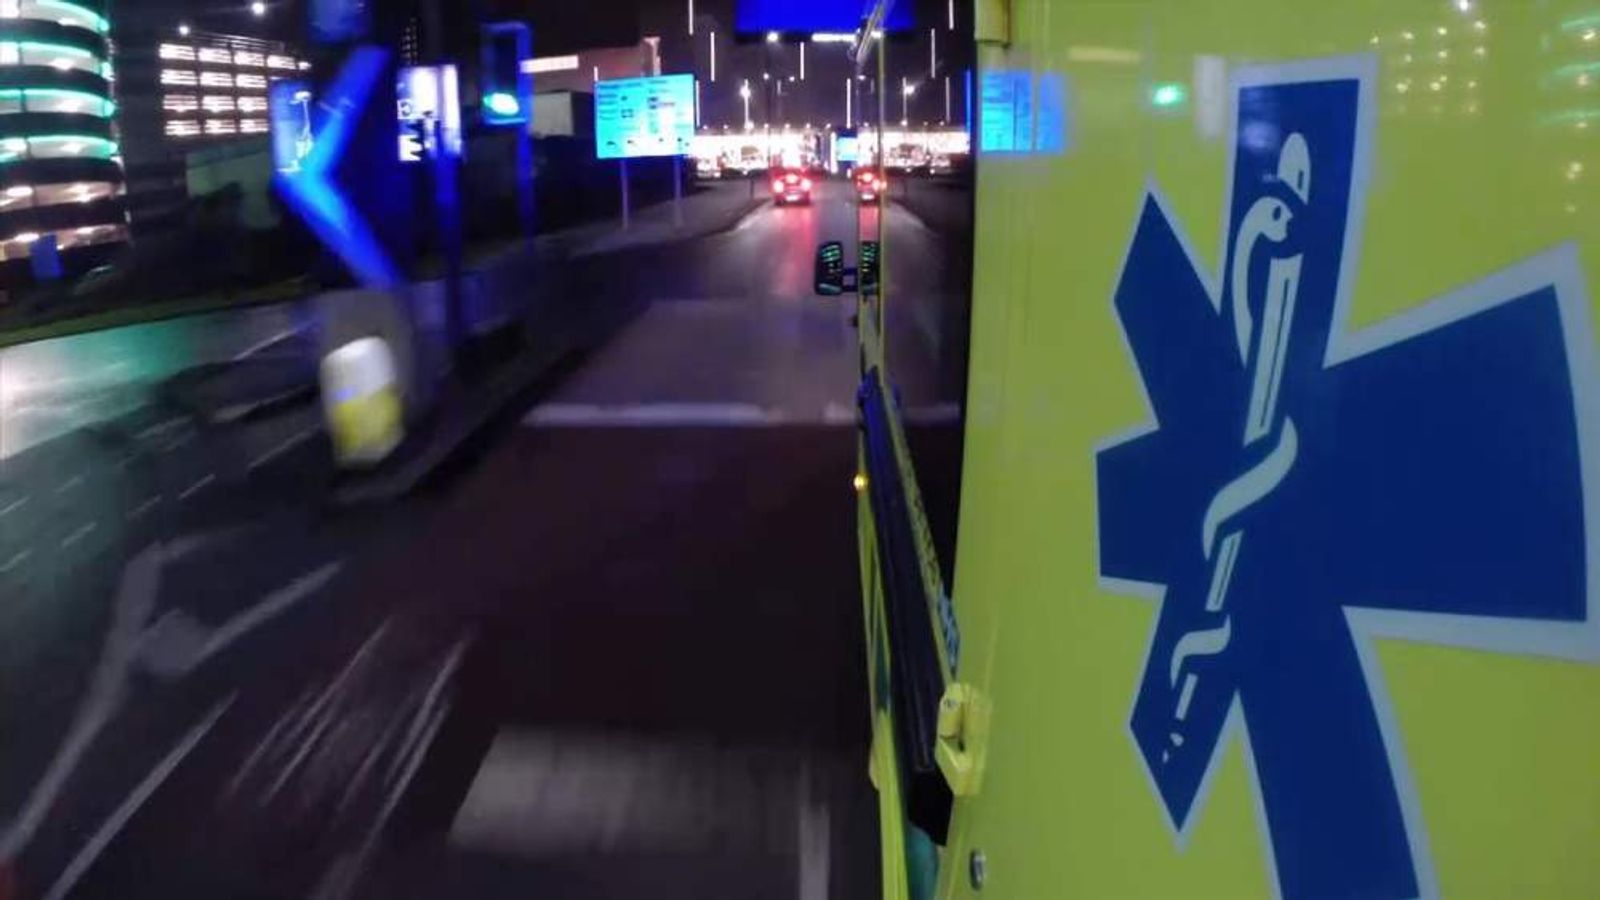 Sky's Thomas Moore spent the evening with paramedics